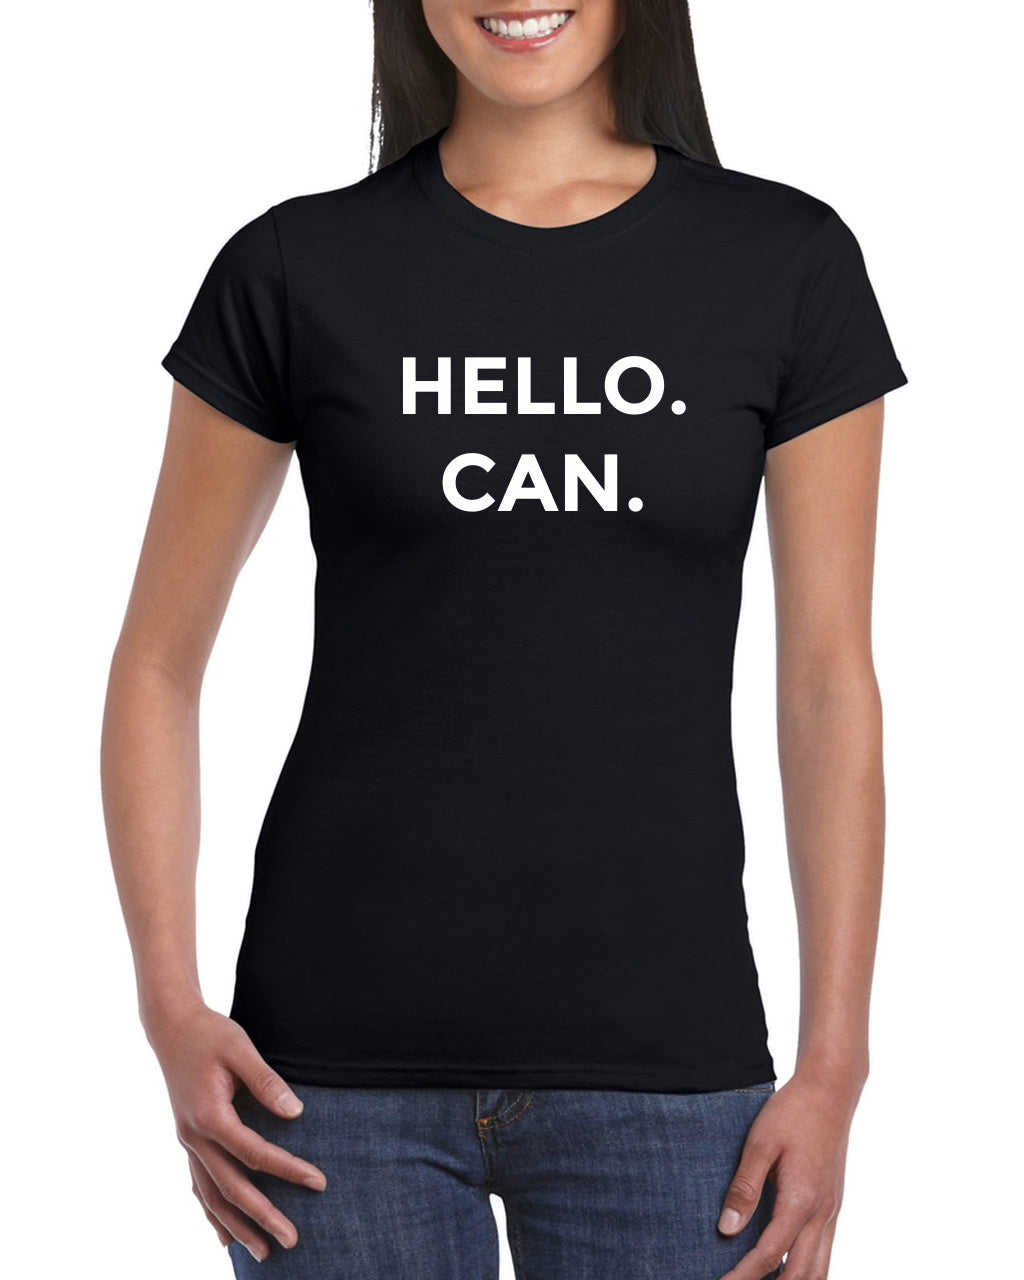 PRE-ORDER- #GSCAdmin Trolling - HELLO. CAN. Ladies-Limited Tee